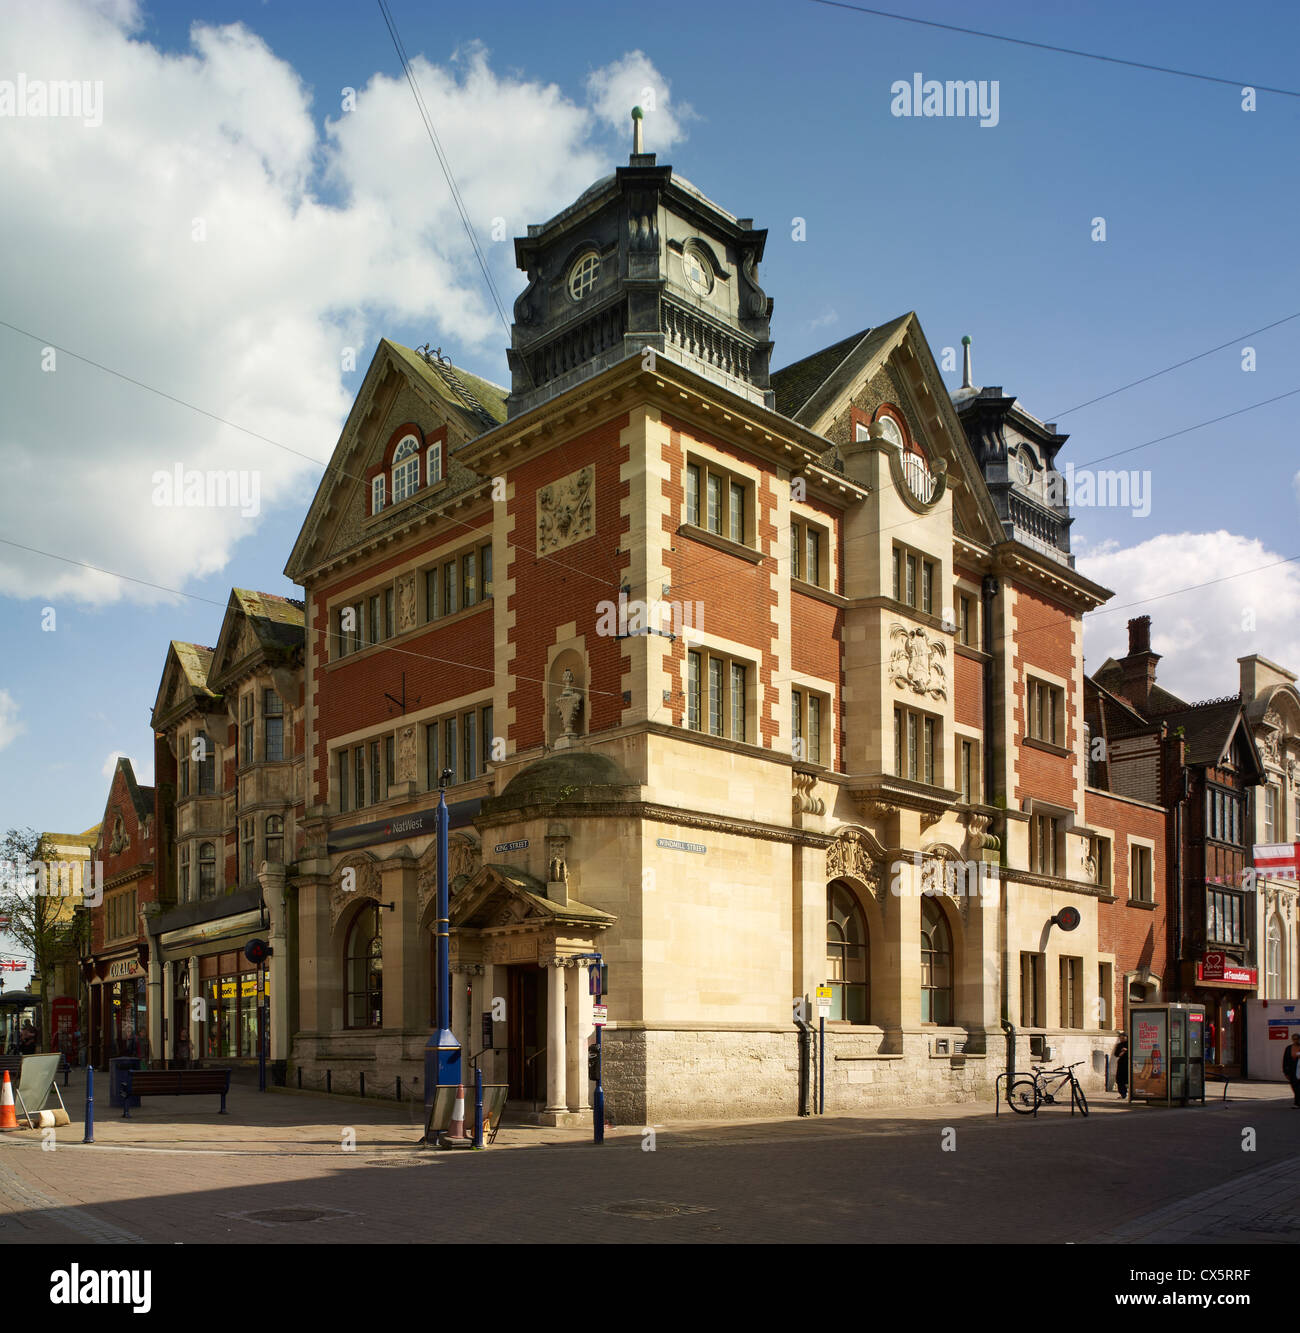 Gravesend, NatWest Bank Photo Stock